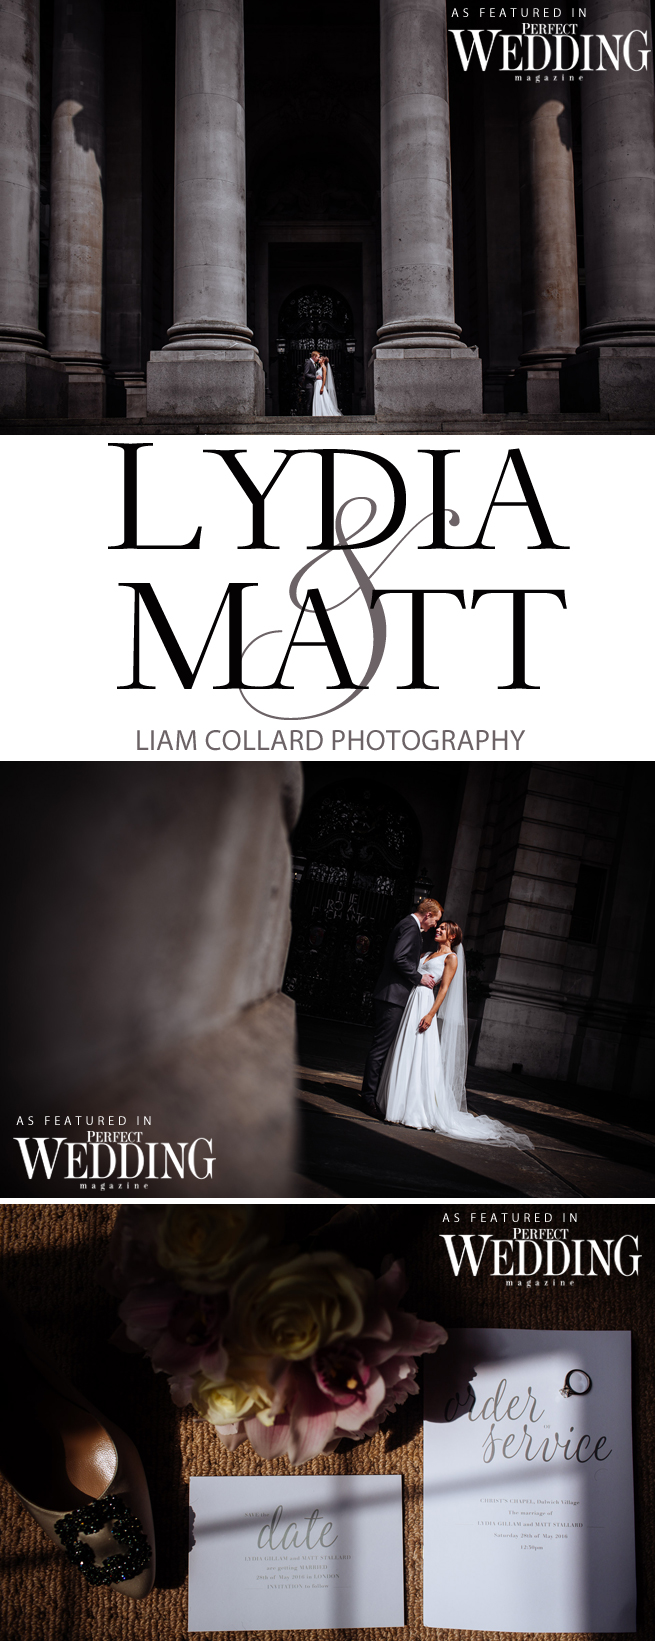 Liam Collard Photography, Stam Photography, Destination Wedding, UK Weddings, Perfect Wedding Magazine, Perfect Wedding Blog, Perfect Wedding Magazine Blog, London Weddings, European Wedding